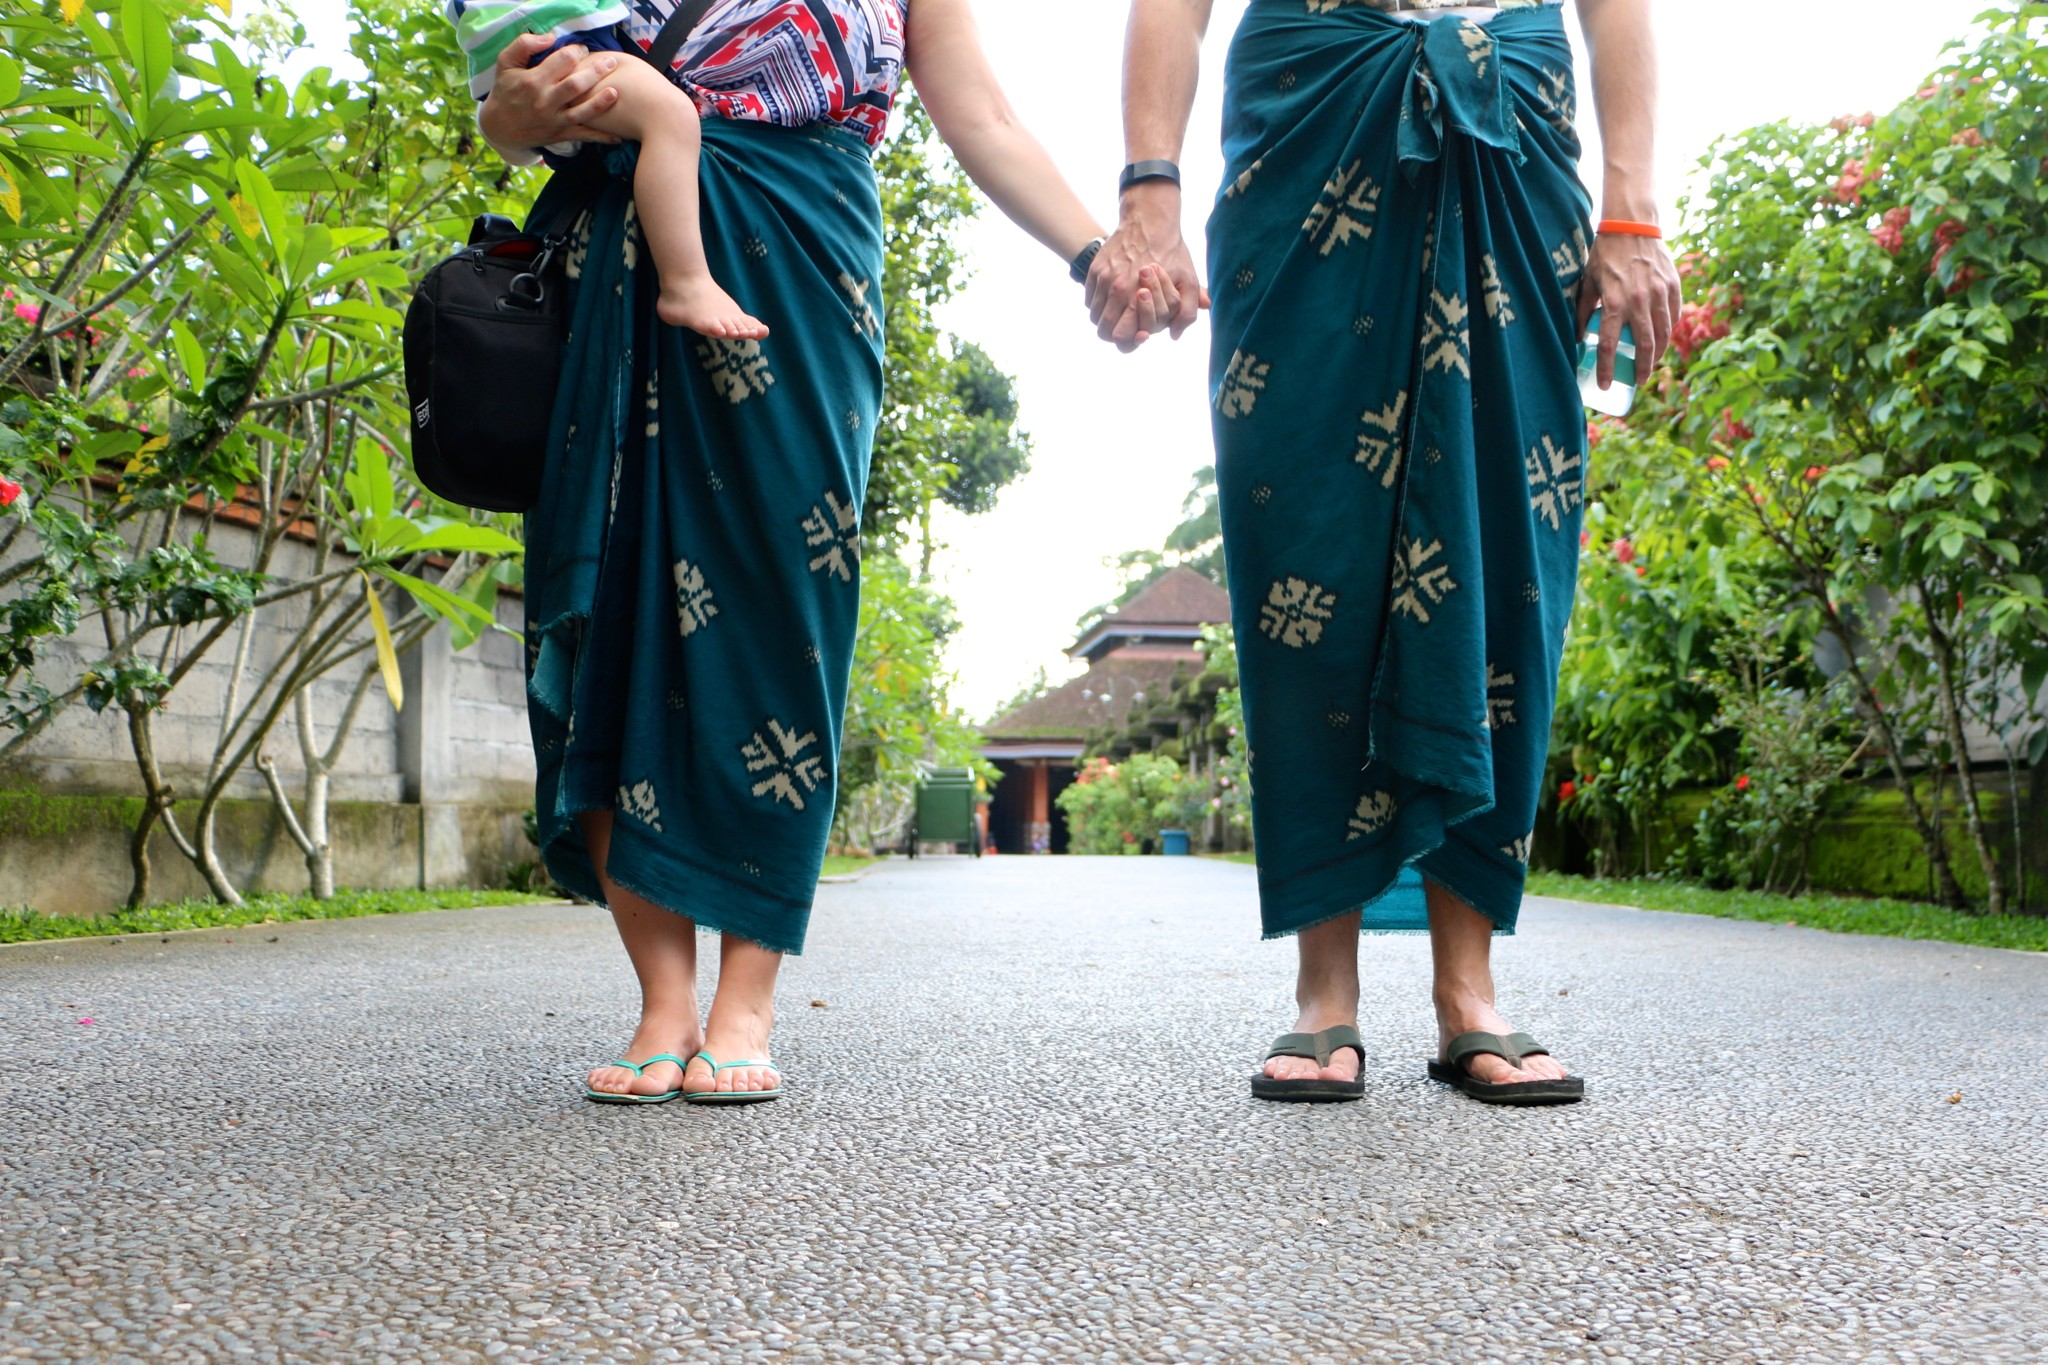 Tips for Traveling as a Family